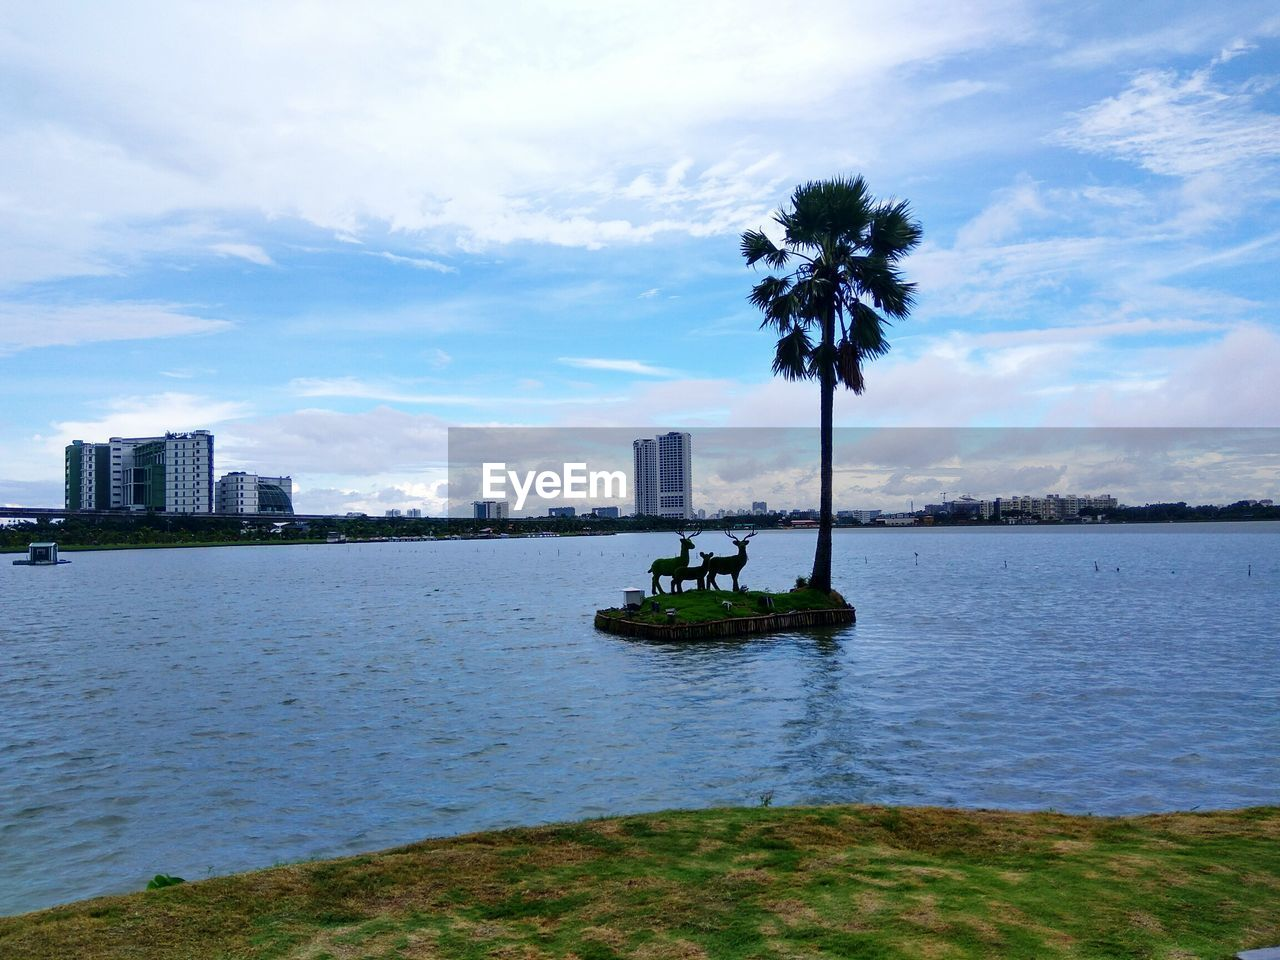 cloud - sky, water, sky, tree, architecture, waterfront, building exterior, built structure, outdoors, sea, skyscraper, city, day, transportation, palm tree, nautical vessel, nature, growth, no people, beauty in nature, cityscape, urban skyline